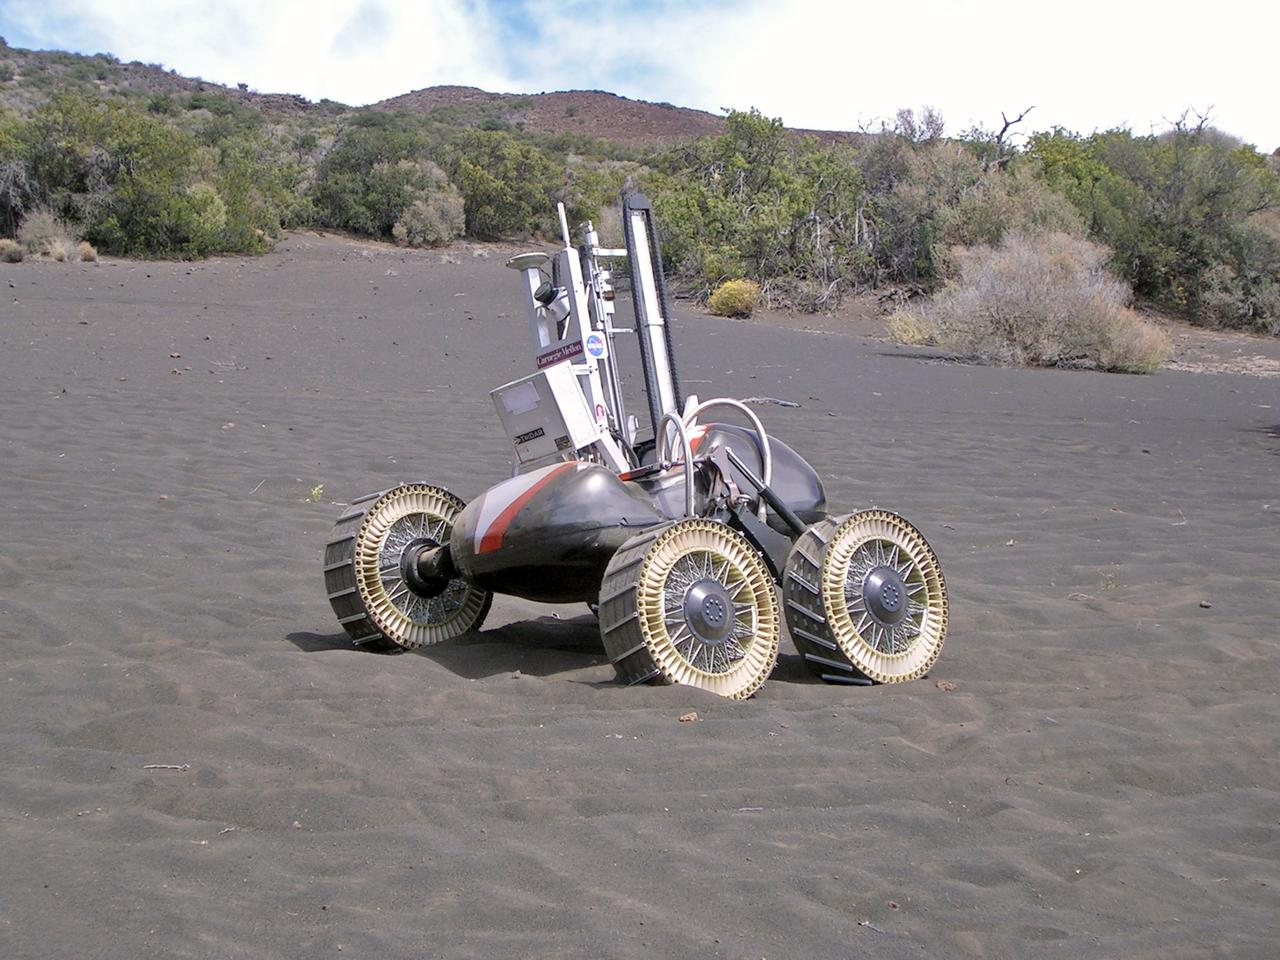 NASA's Lunar rover prototype, Scarab may one day be a contender for swarmies (Photo: NASA)